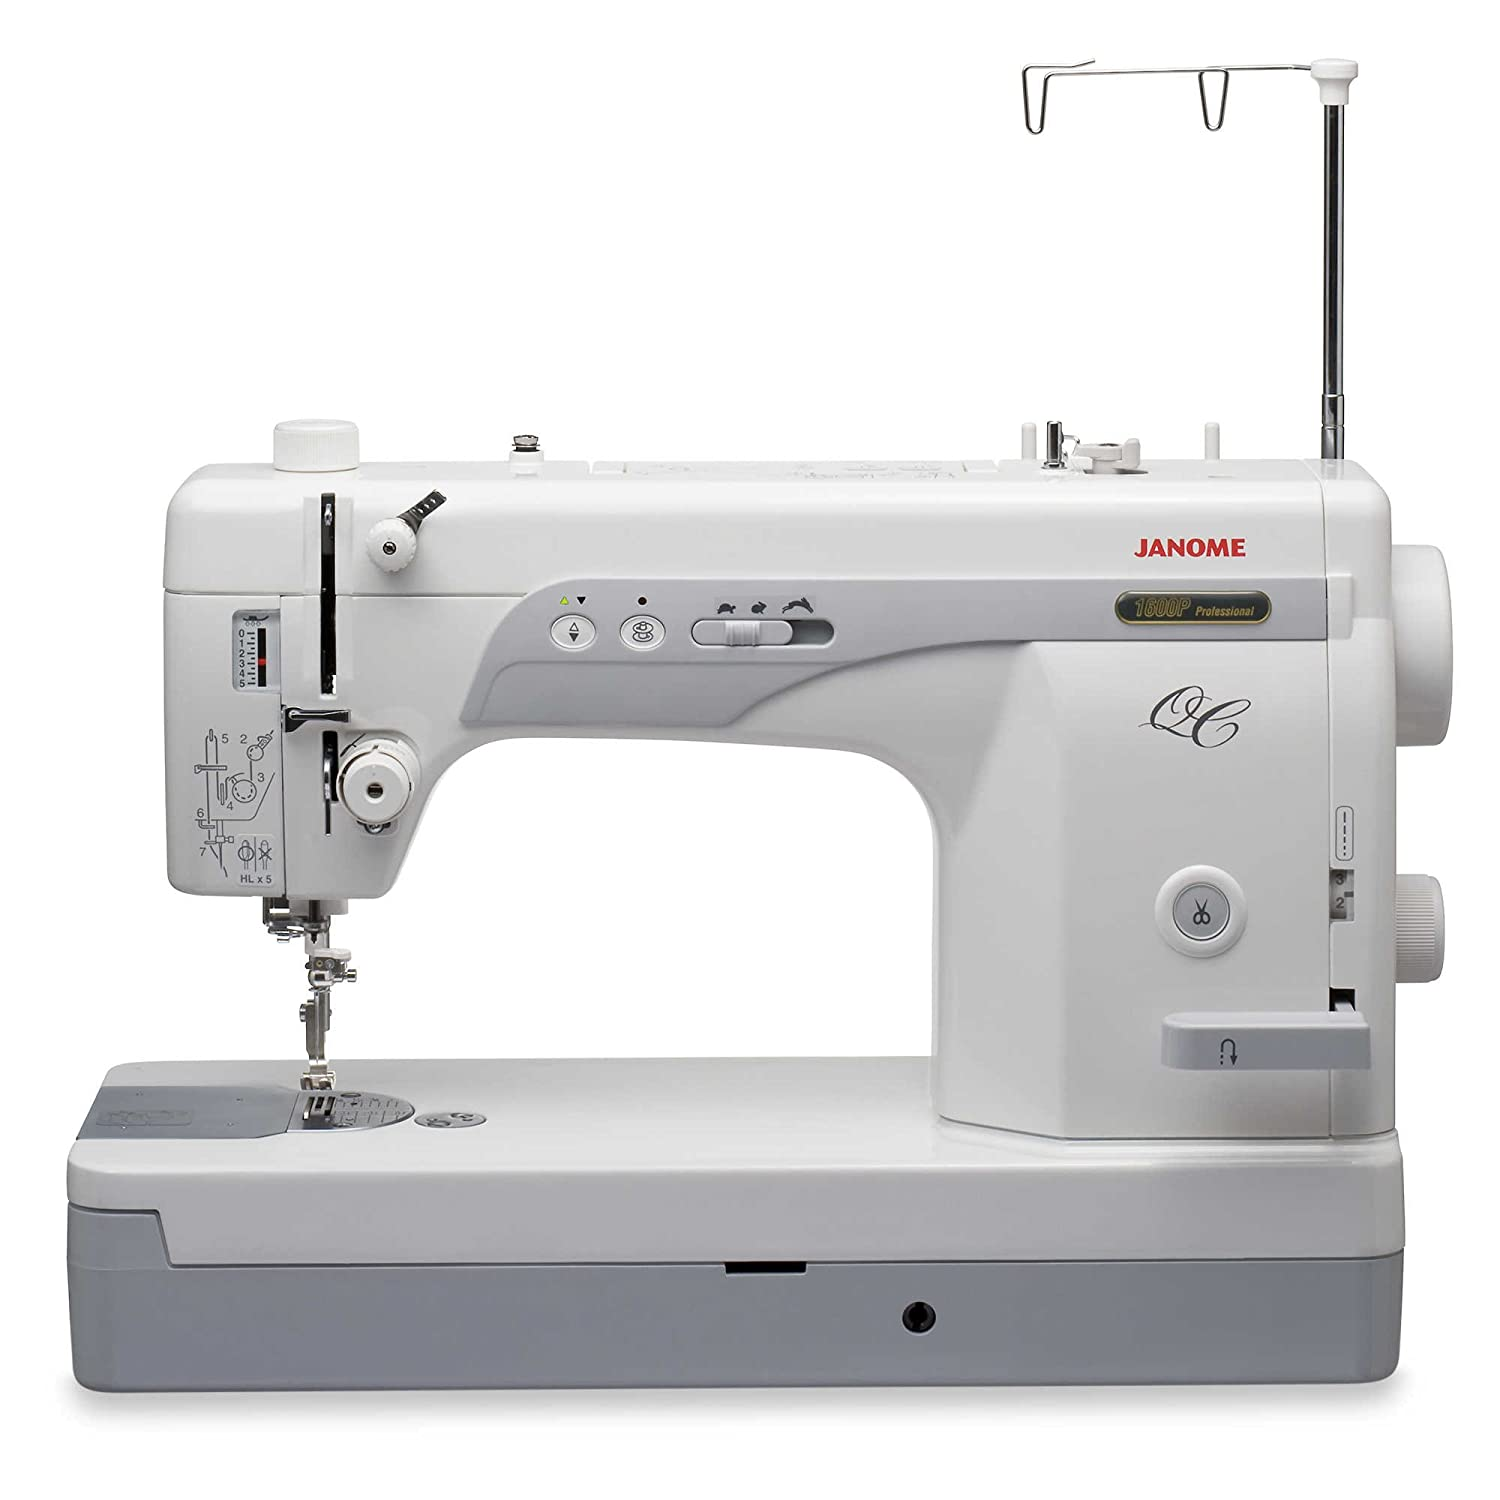 quilt products machine sewing value janome quilting jaycotts size full buy basic co great